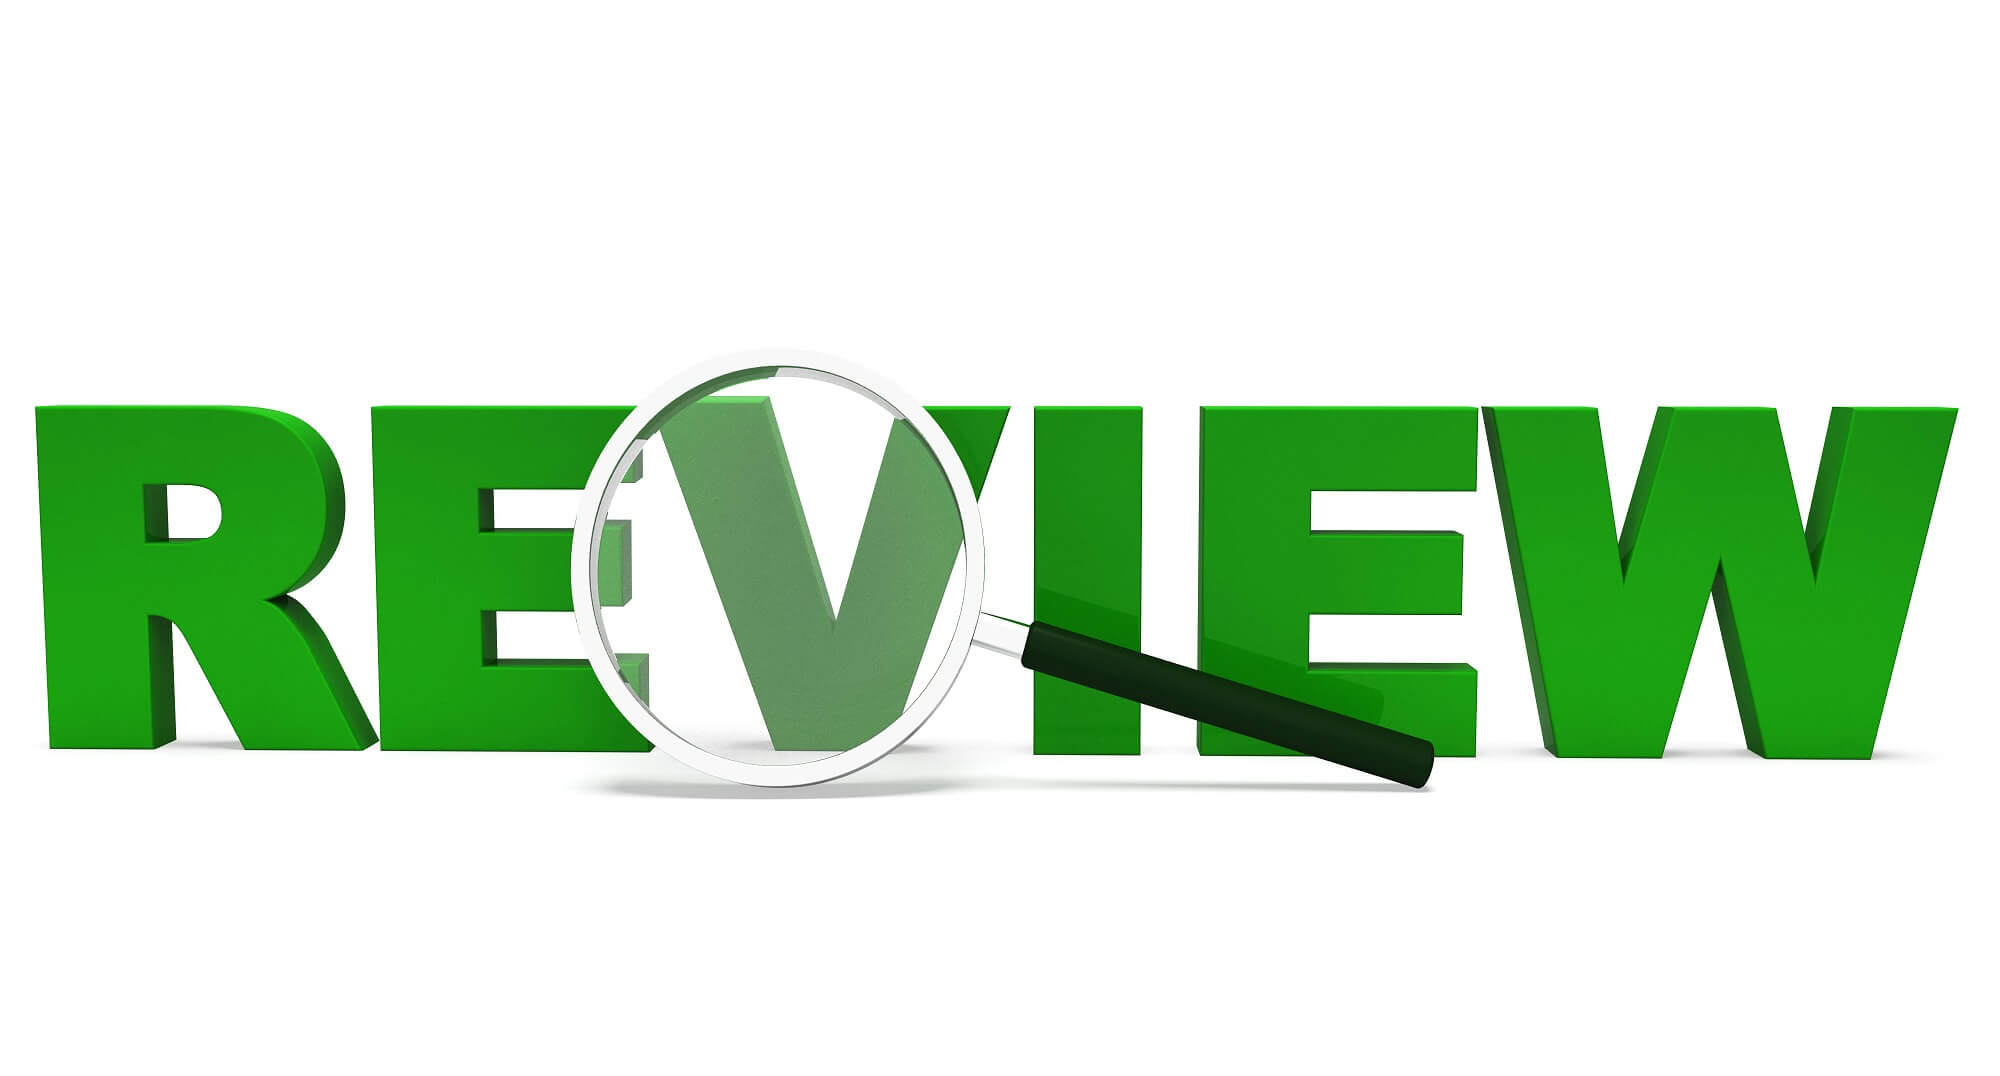 What To Look For in an Online Casino Review